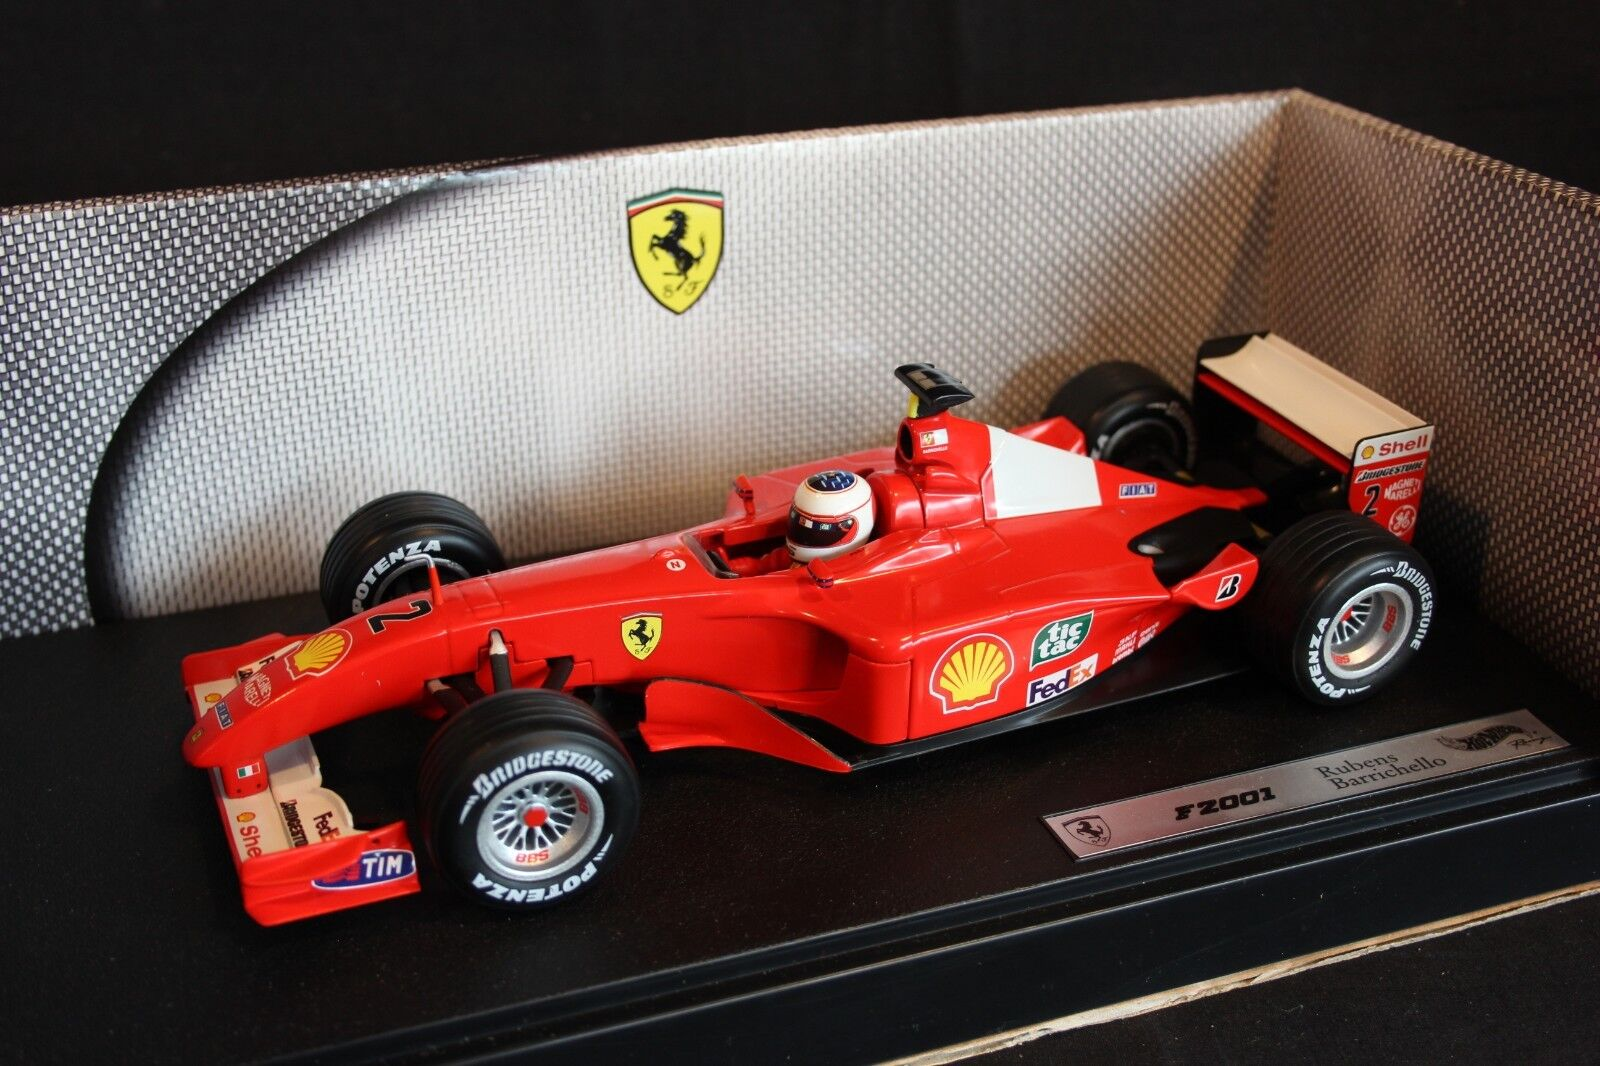 Hot Wheels Ferrari F2001 2001 1 18  2 Rubens Barrichello (BRA)